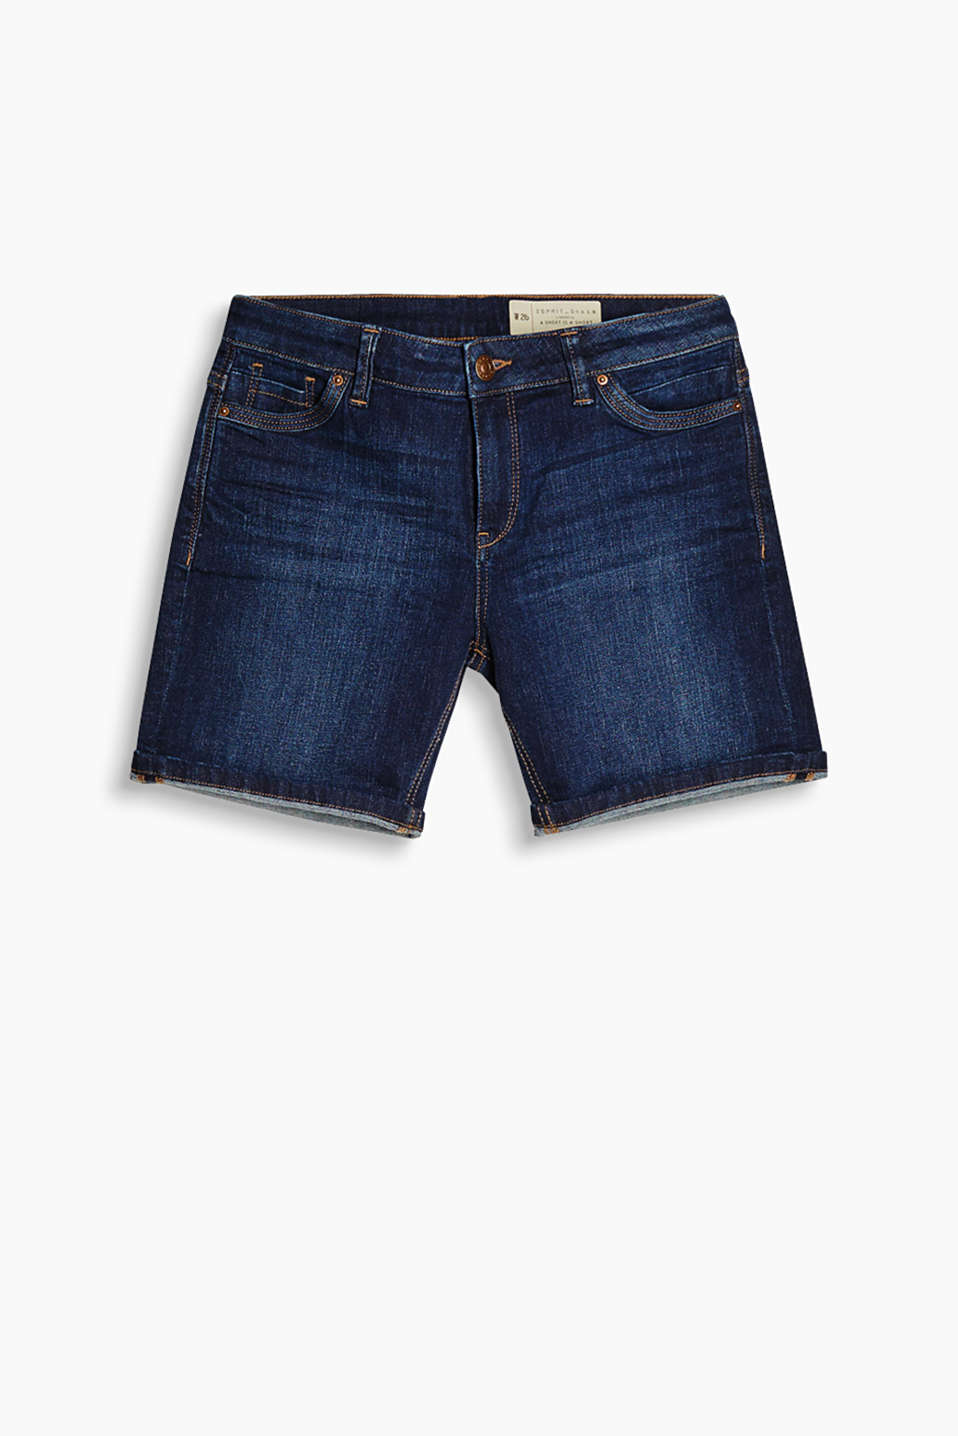 Lightweight stretch denim shorts with adjustable roll-up hems